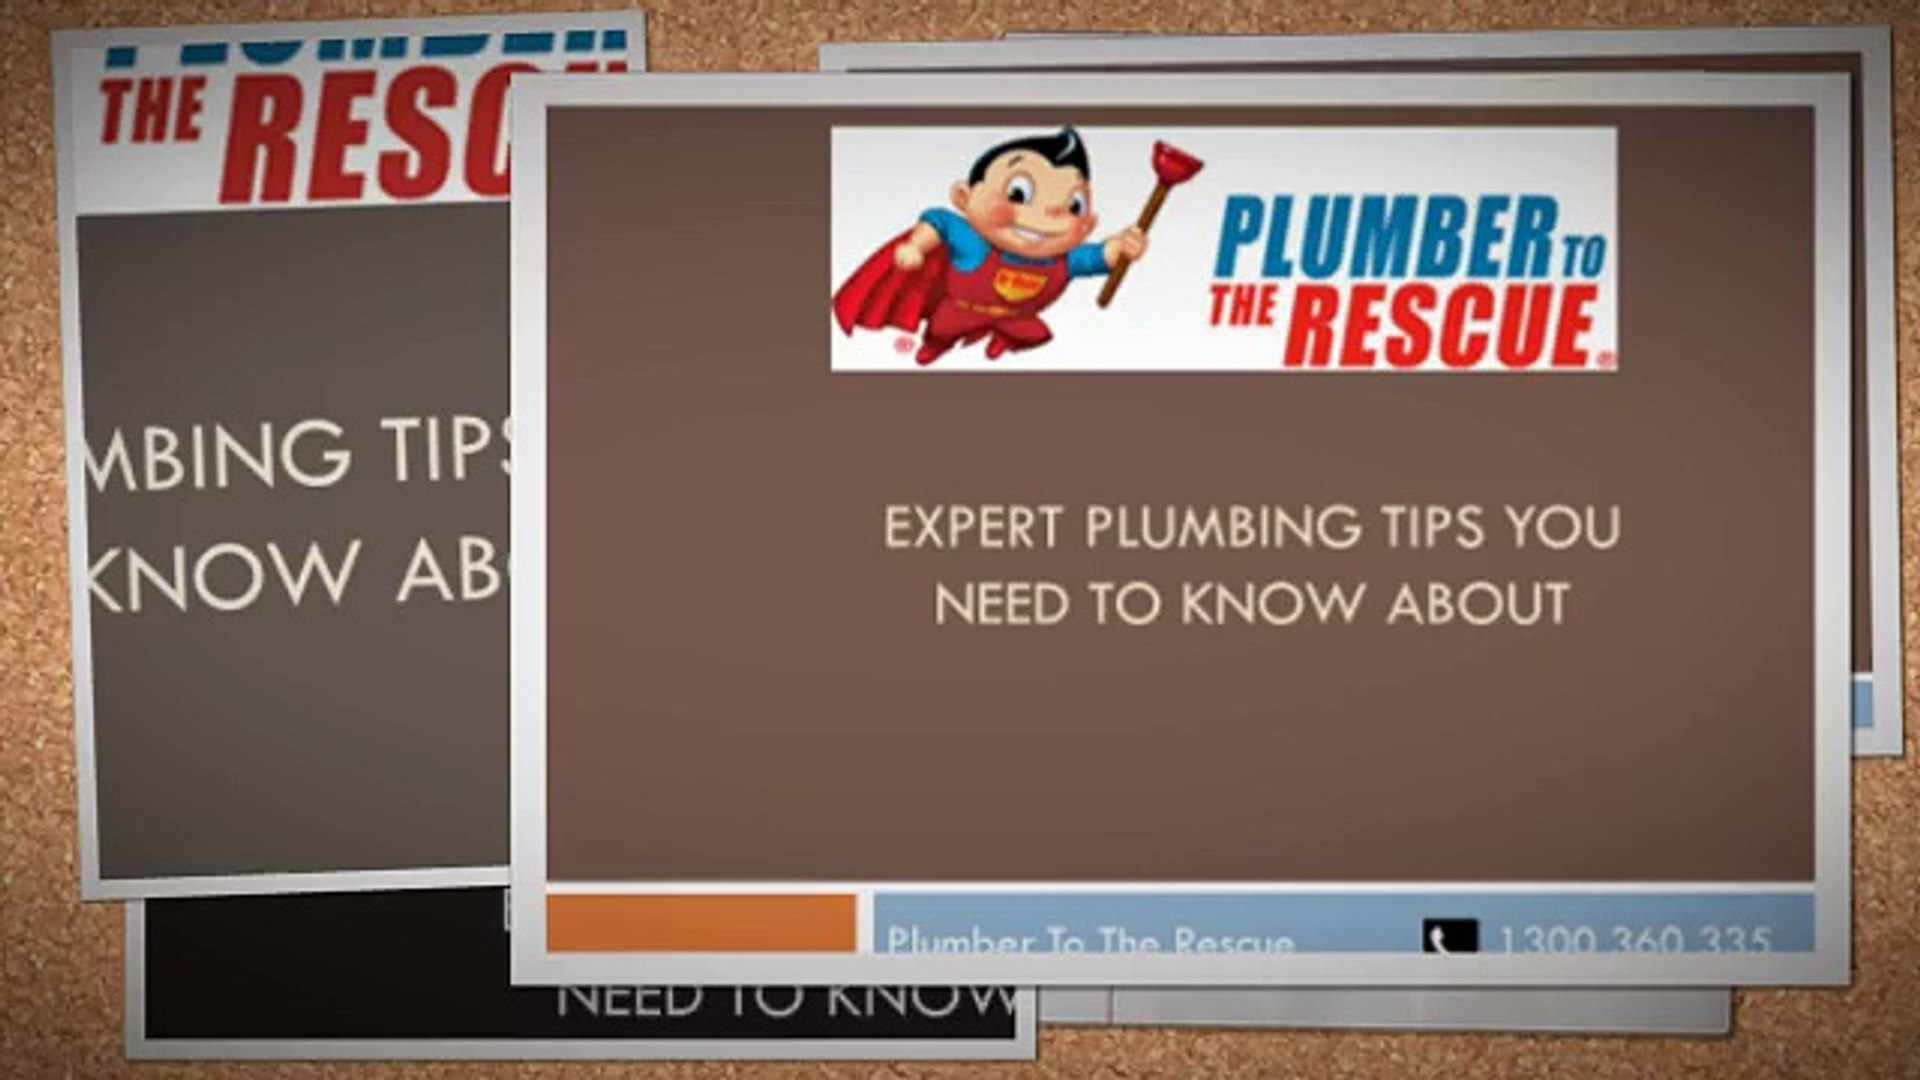 Plumbing Tips From Plumber To The